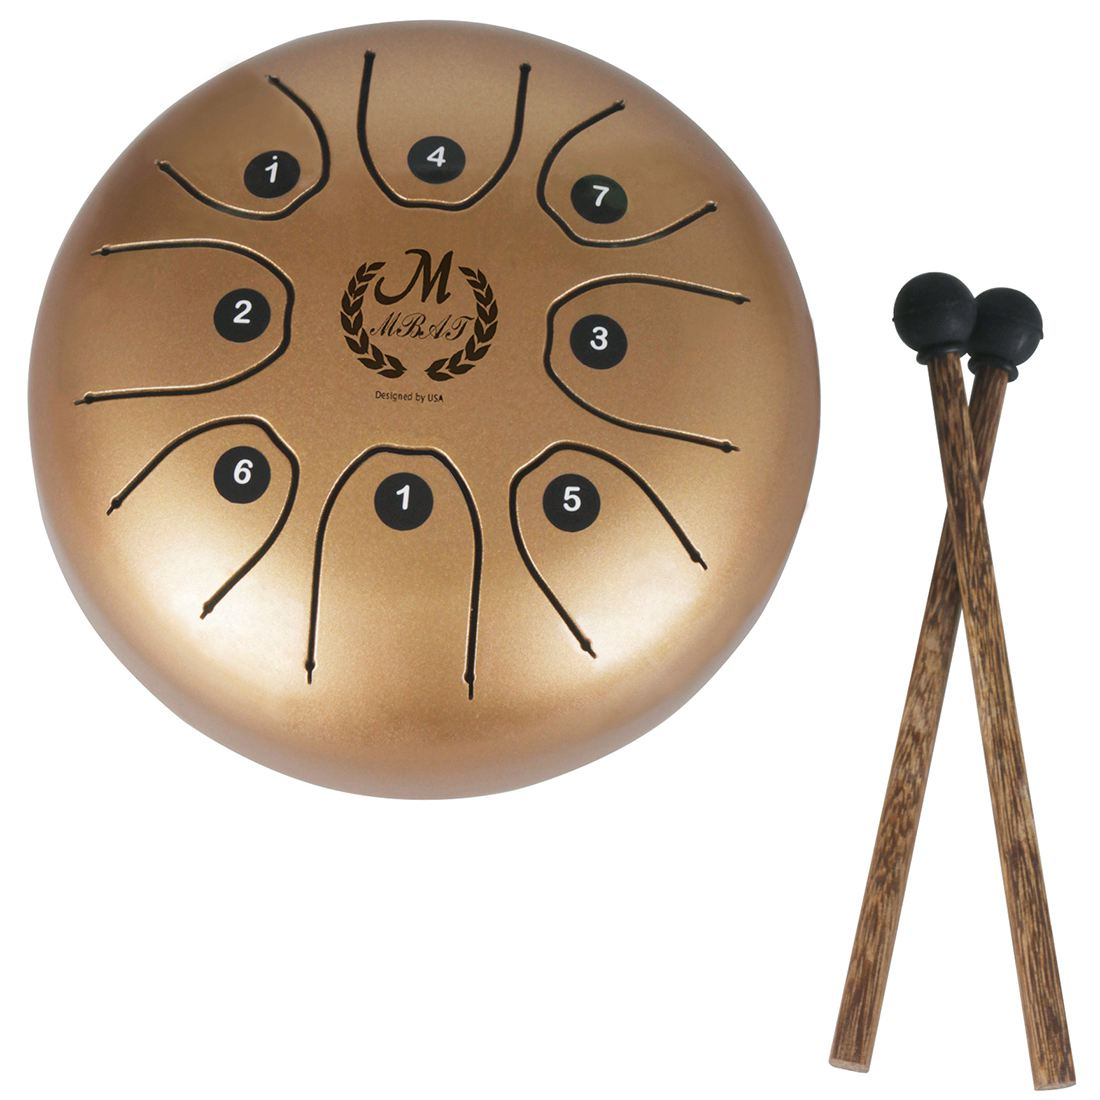 MMBAT 5 5 inch small size steel tongue drum with C D E F G A